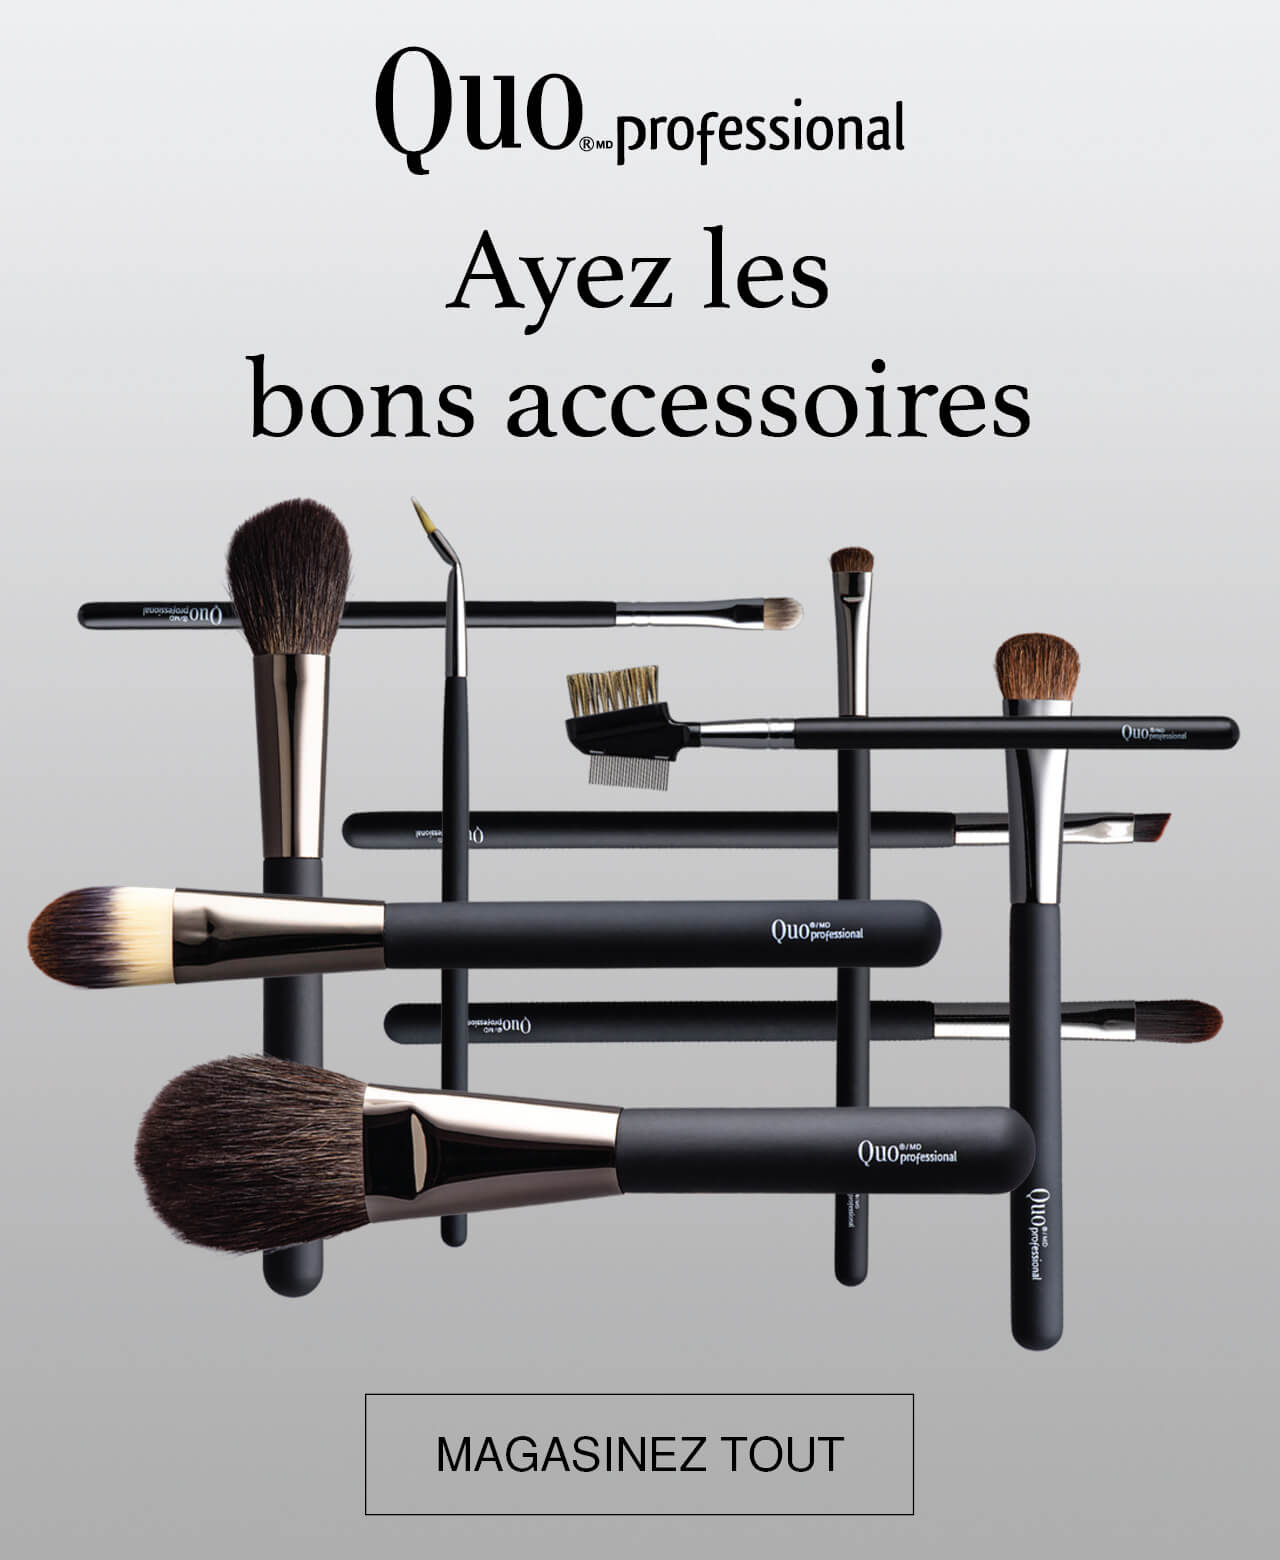 Quo Professional Ayez les bons accessories